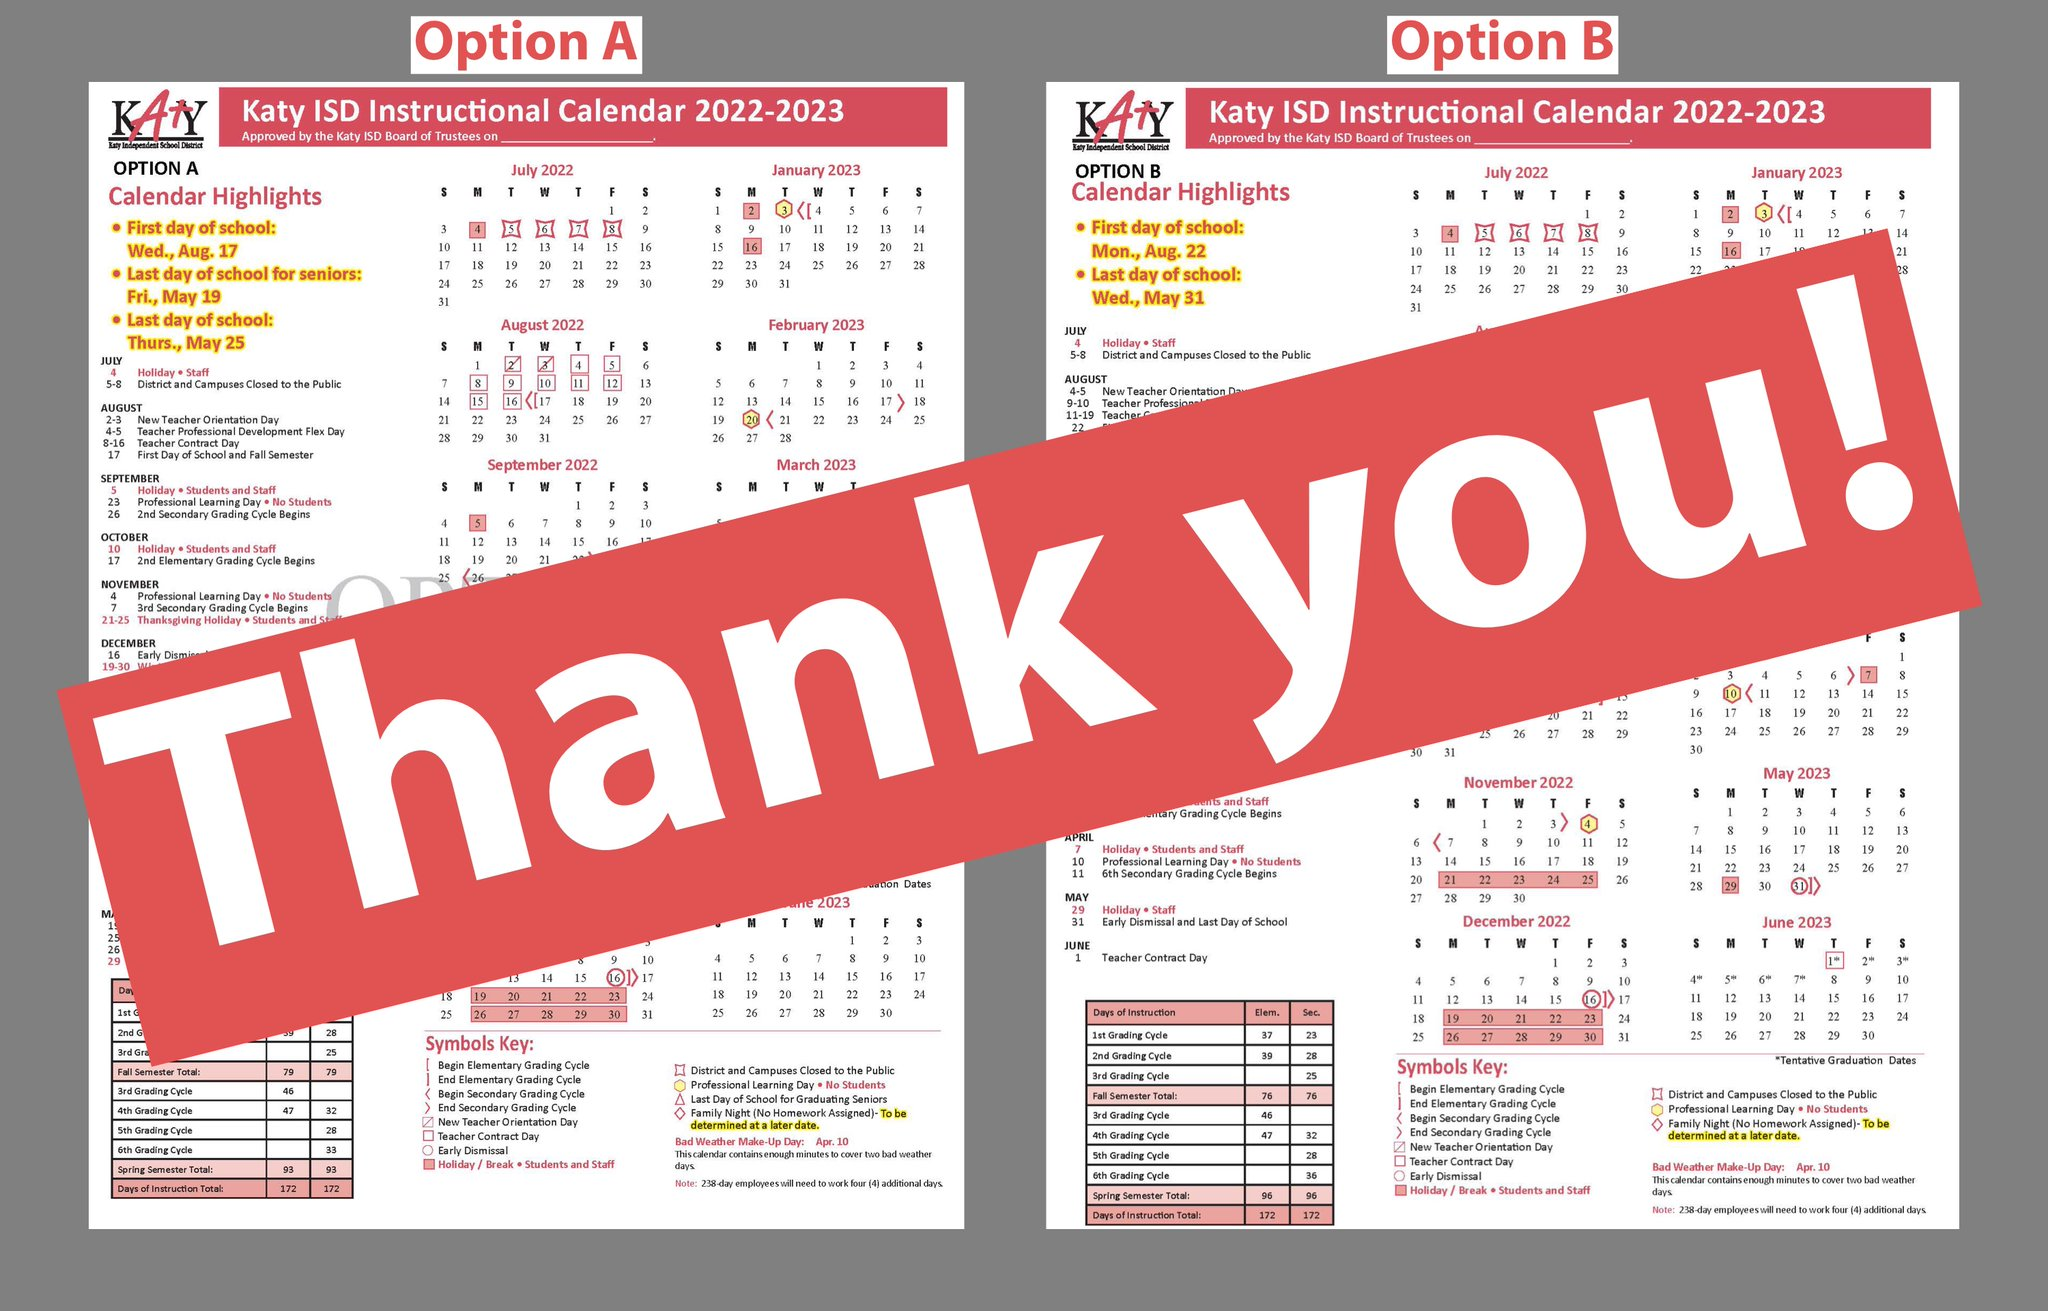 Katy Isd Calendar 2022 2023.Katy Isd On Twitter Thank You To Everyone Who Responded To The 2022 2023 Instructional Calendar Survey The Survey Results Will Be Presented At The Next Regular Board Meeting Katyisd Https T Co Rfwuwfs78t